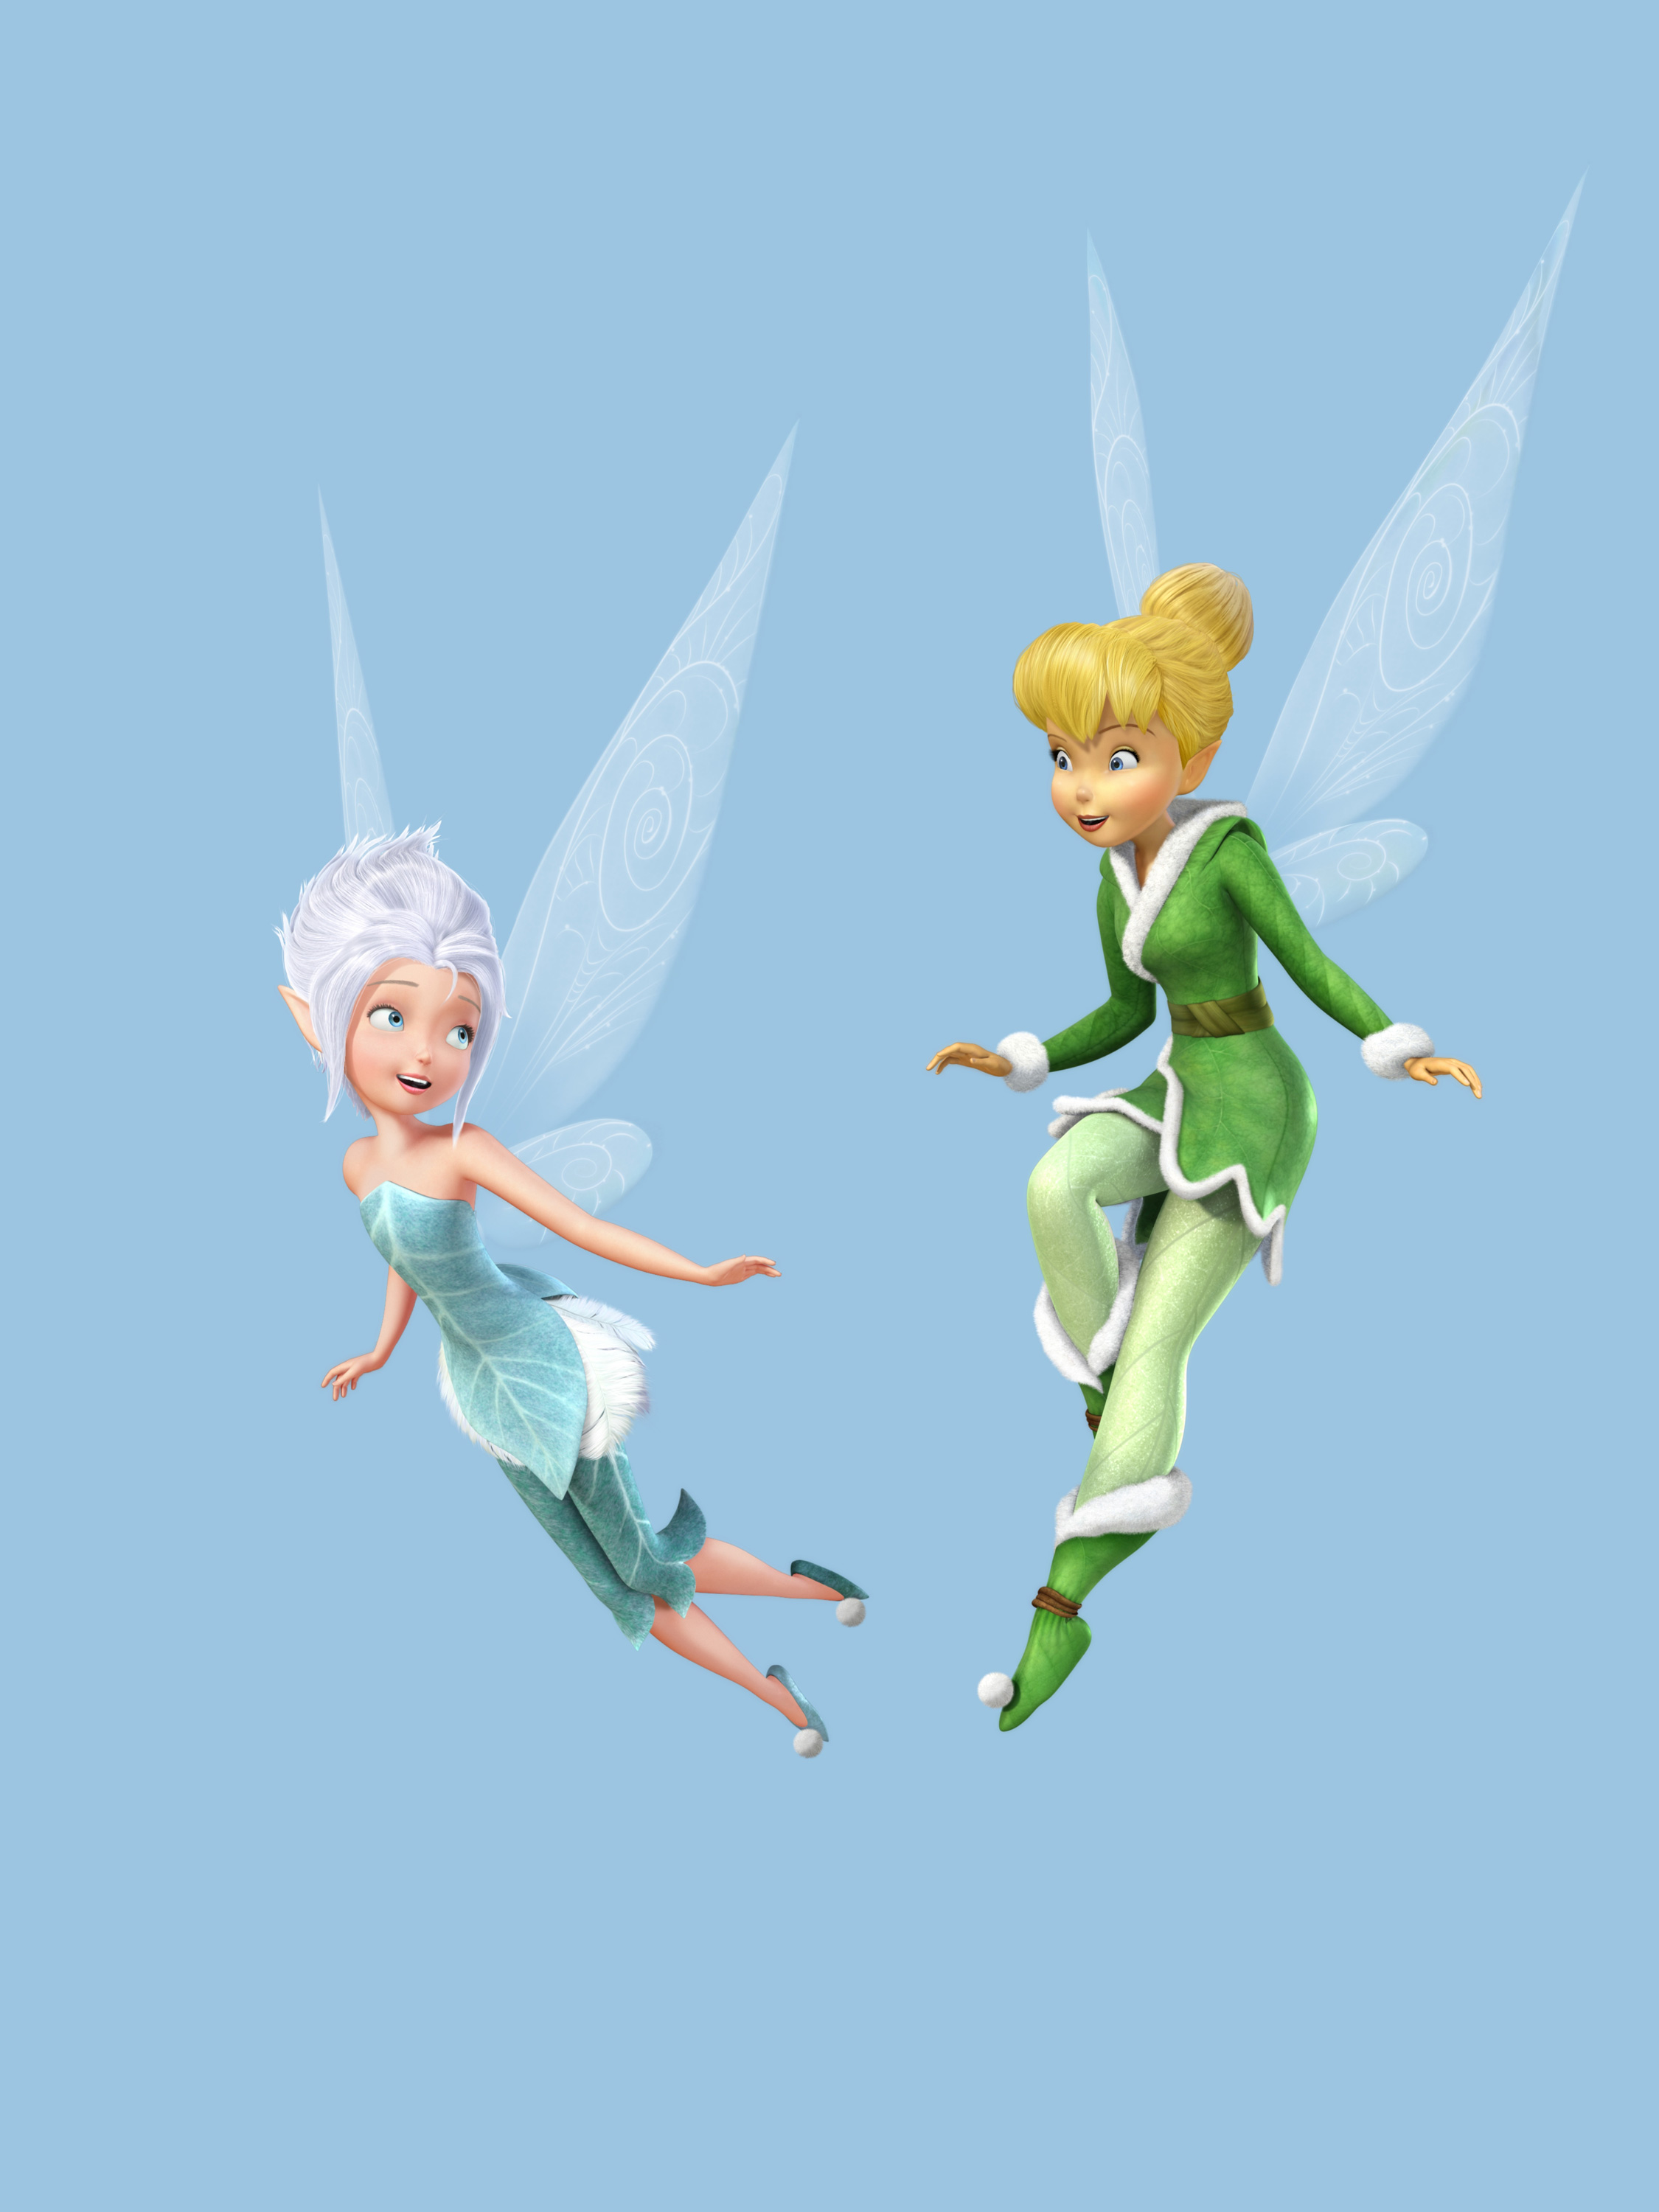 Tinkerbell costume sex pics sex gallery